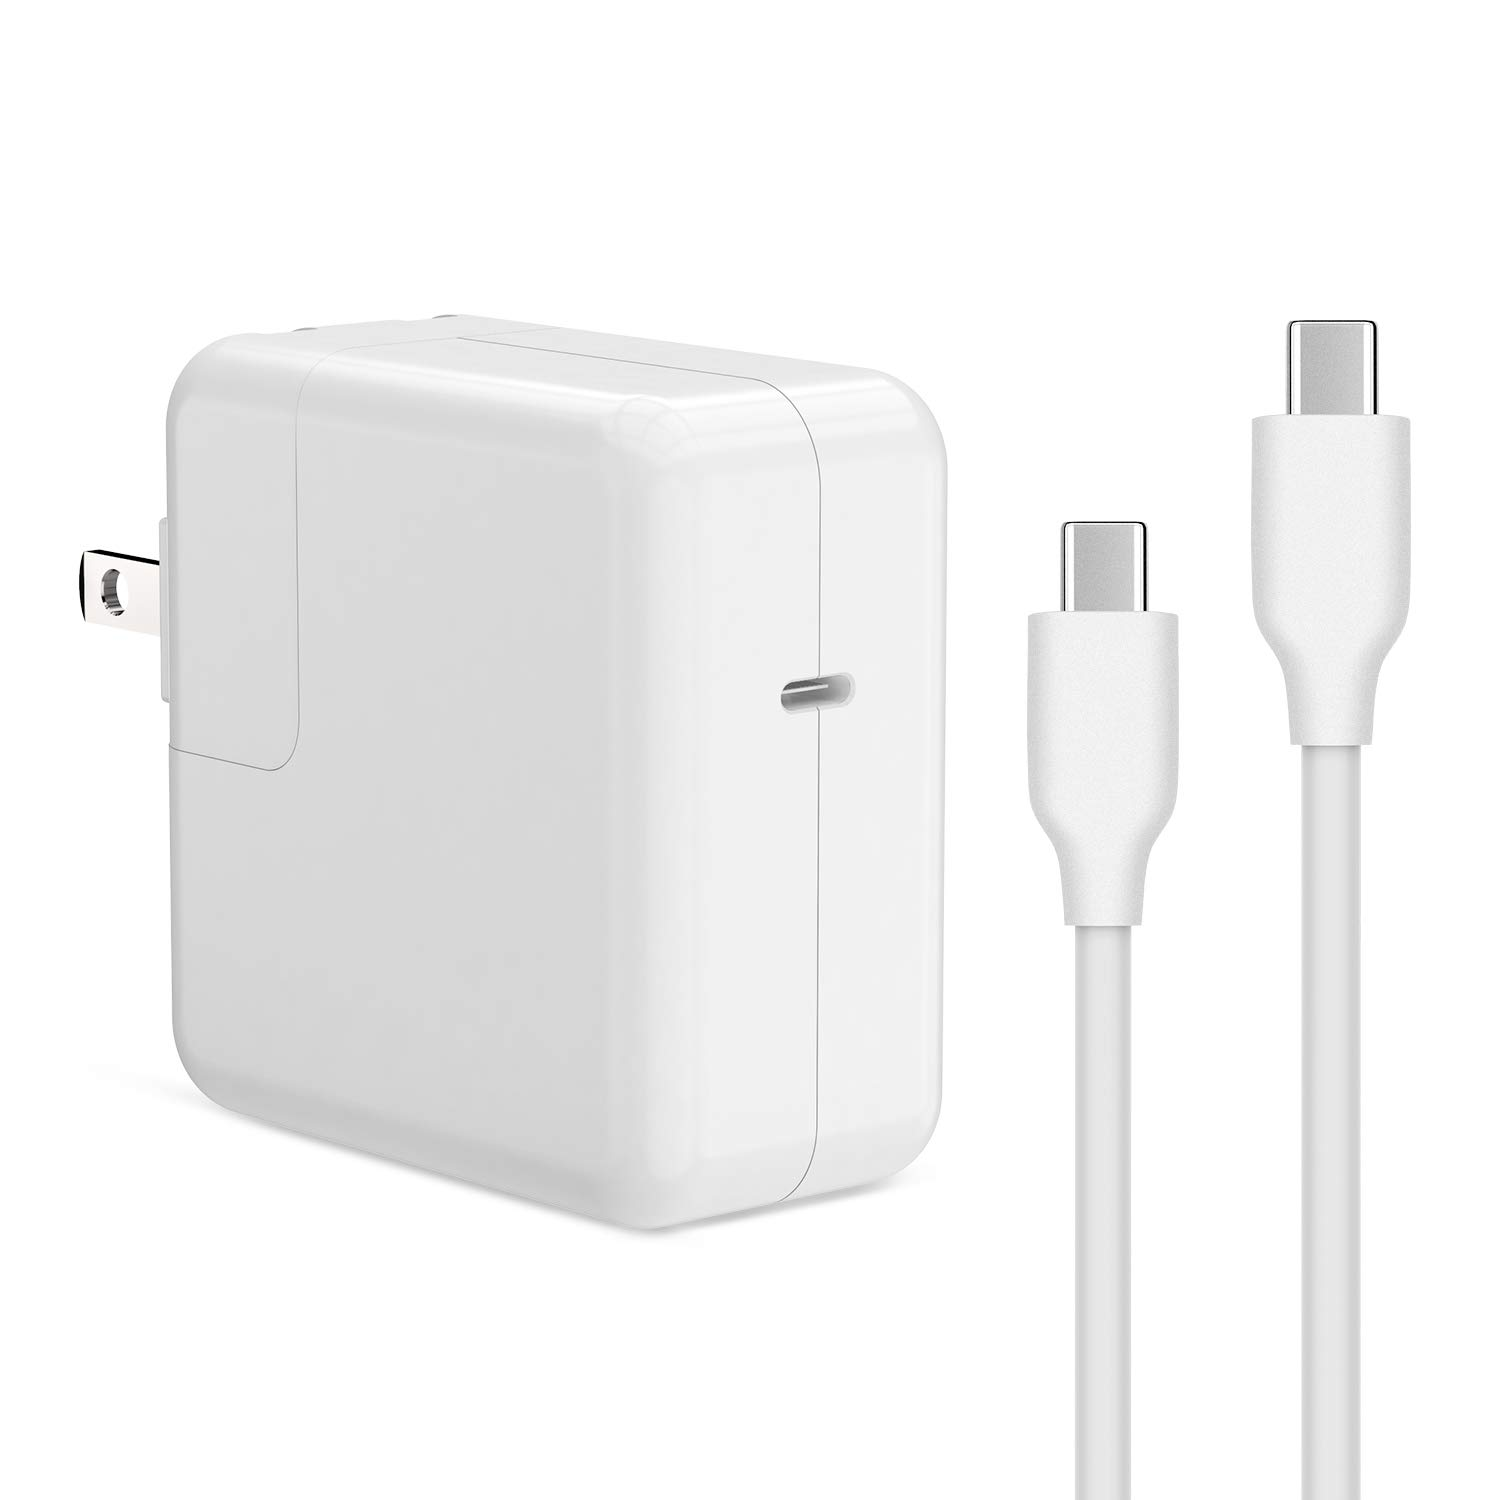 AYNEFF USB C Wall Charger, 30W USB-C Power Adapter, Power Delivery Compatible with MacBook 12-inch, 2018 MacBook Air,2018 iPad Pro, iPhone 11 Pro Max, Tablet with 6.5ft USB-C to USB-C Charging Cable